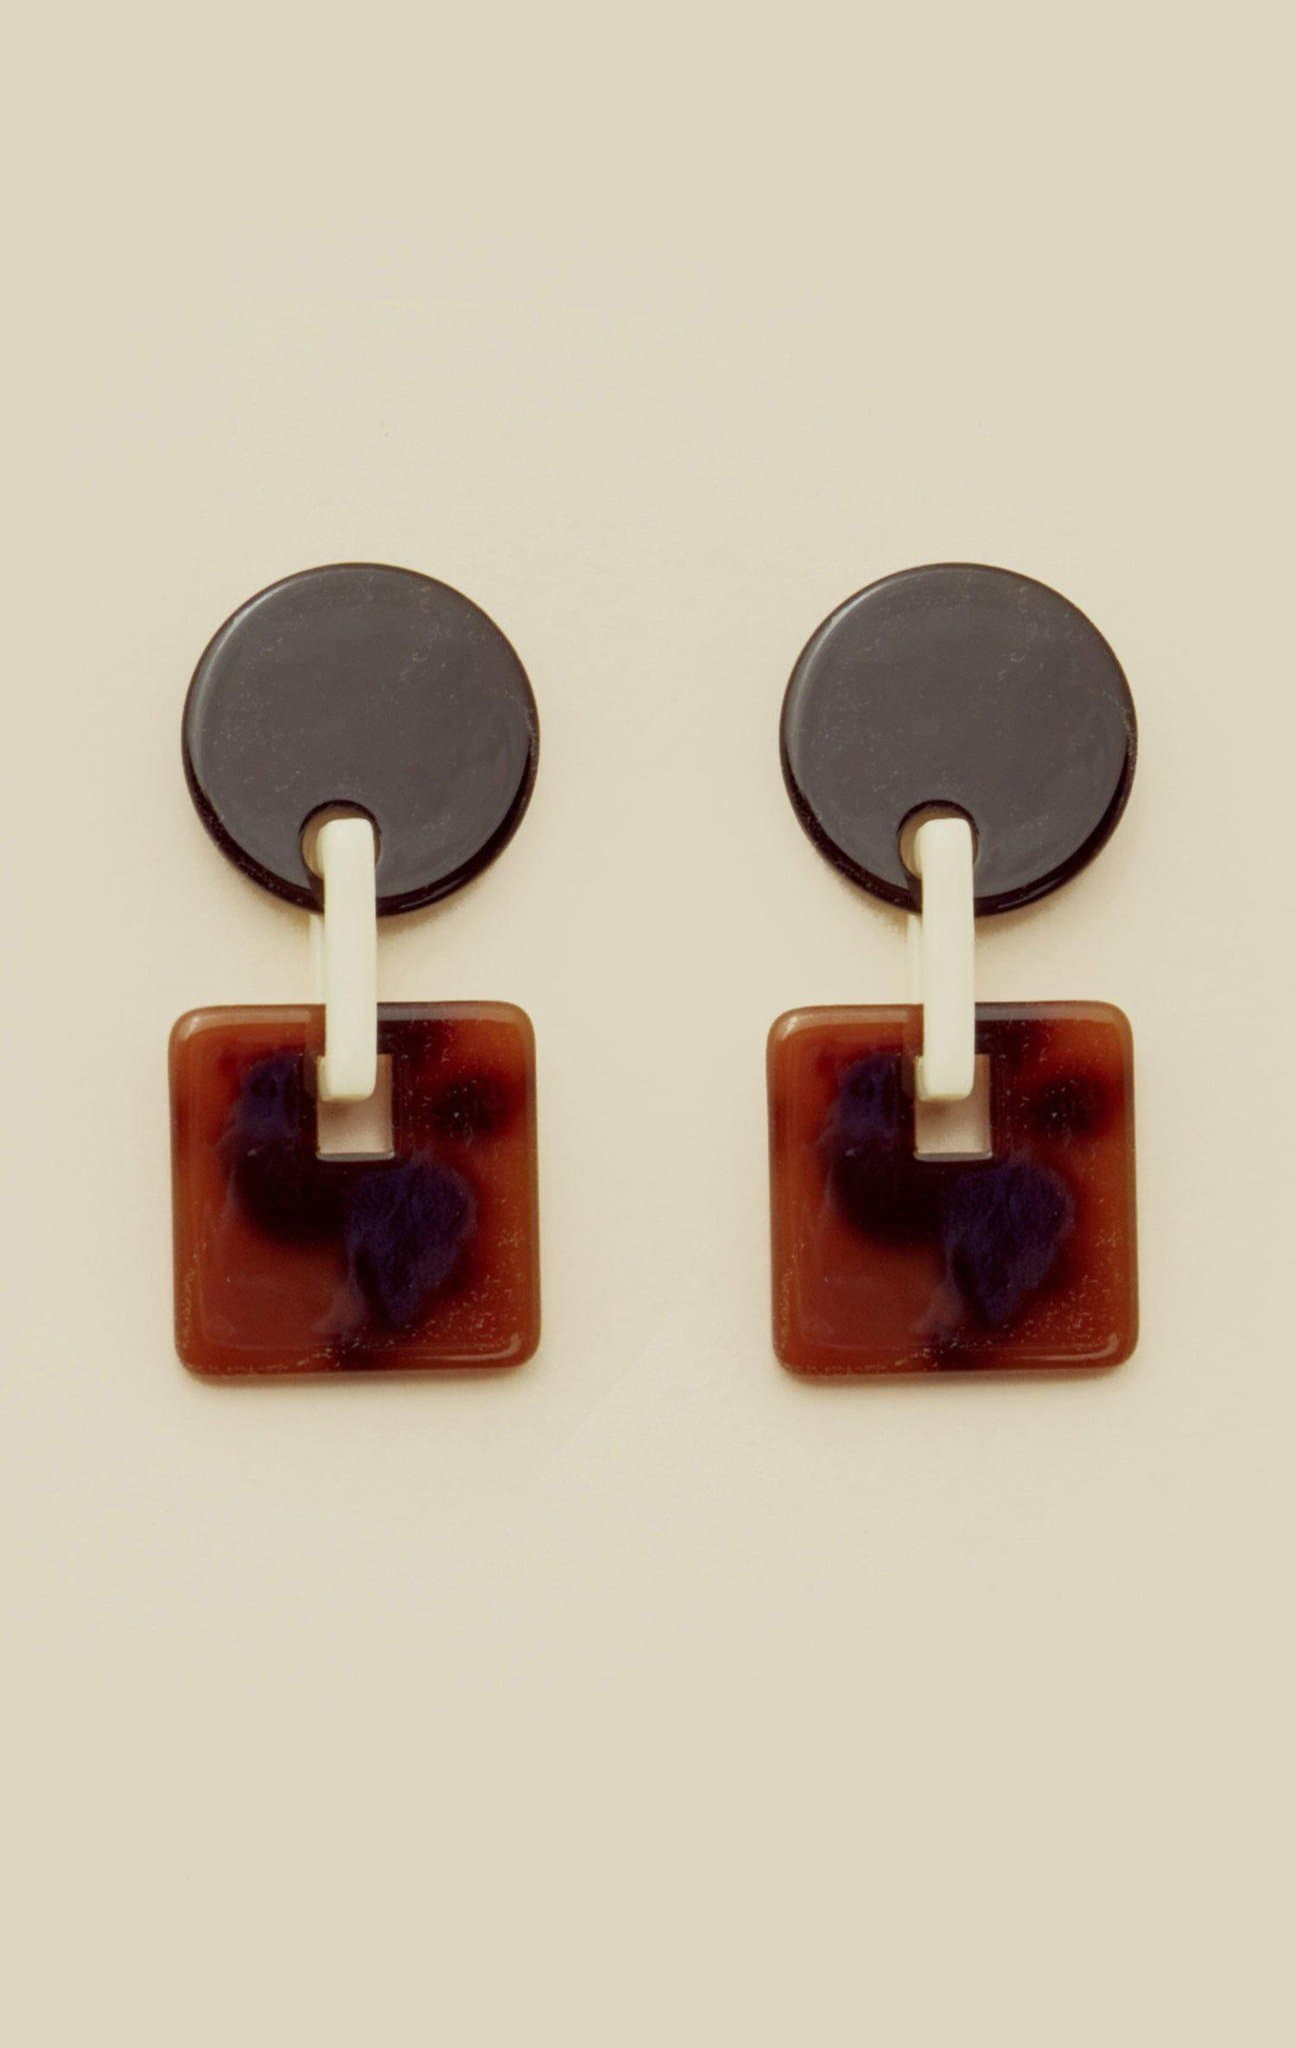 VALET SAVANNAH EARRINGS - TORTOISE